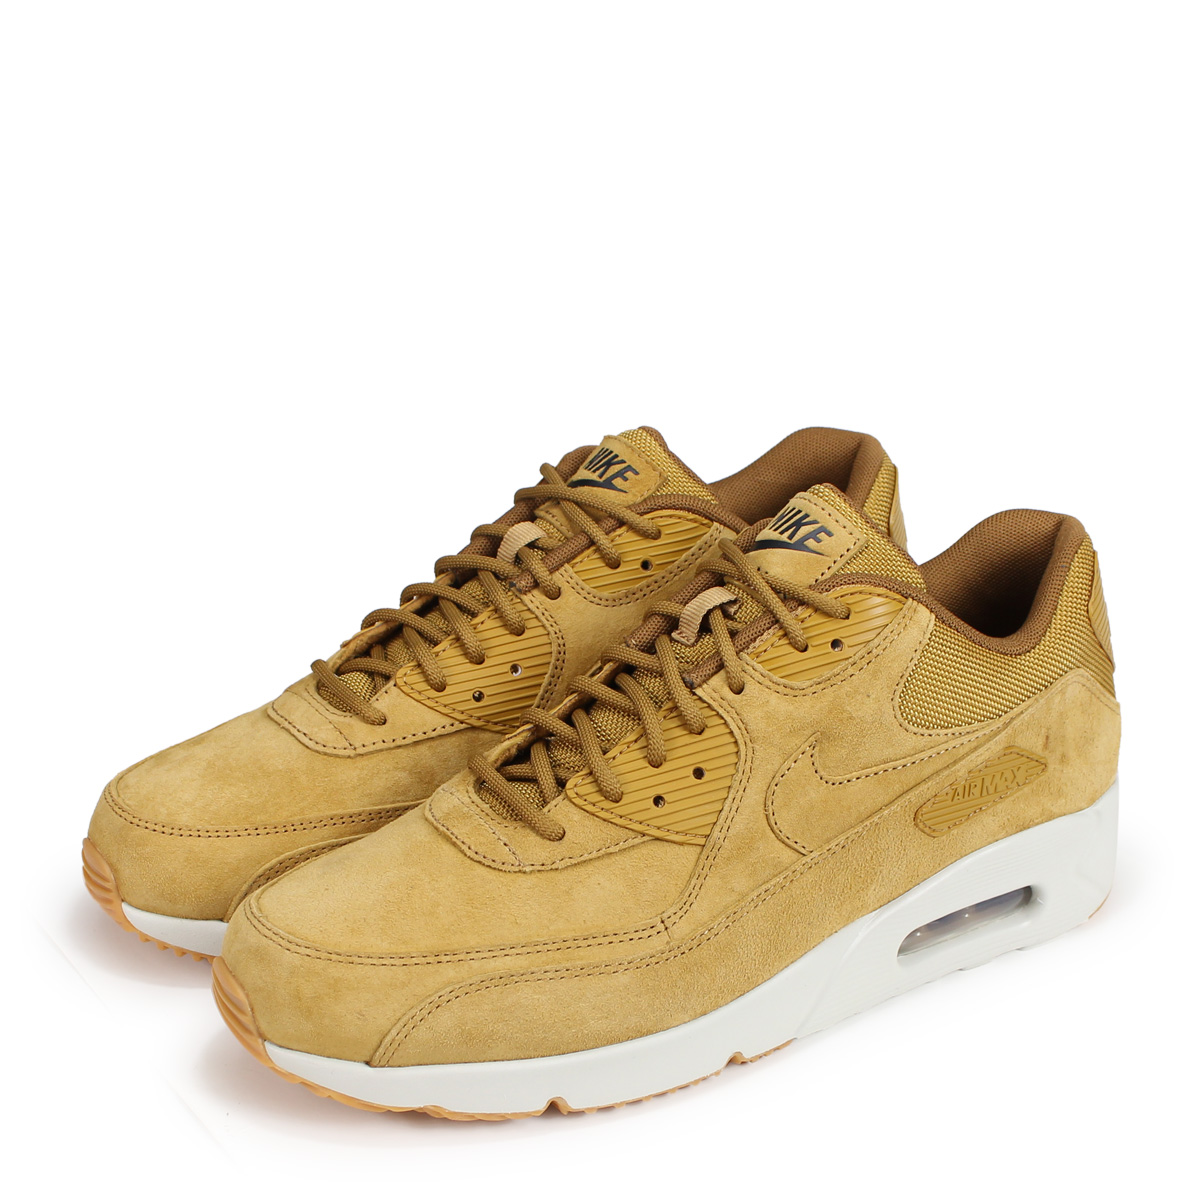 Nike Men Air Max 90 Ultra 2.0 Leather Nike Air Max 90 Ultra